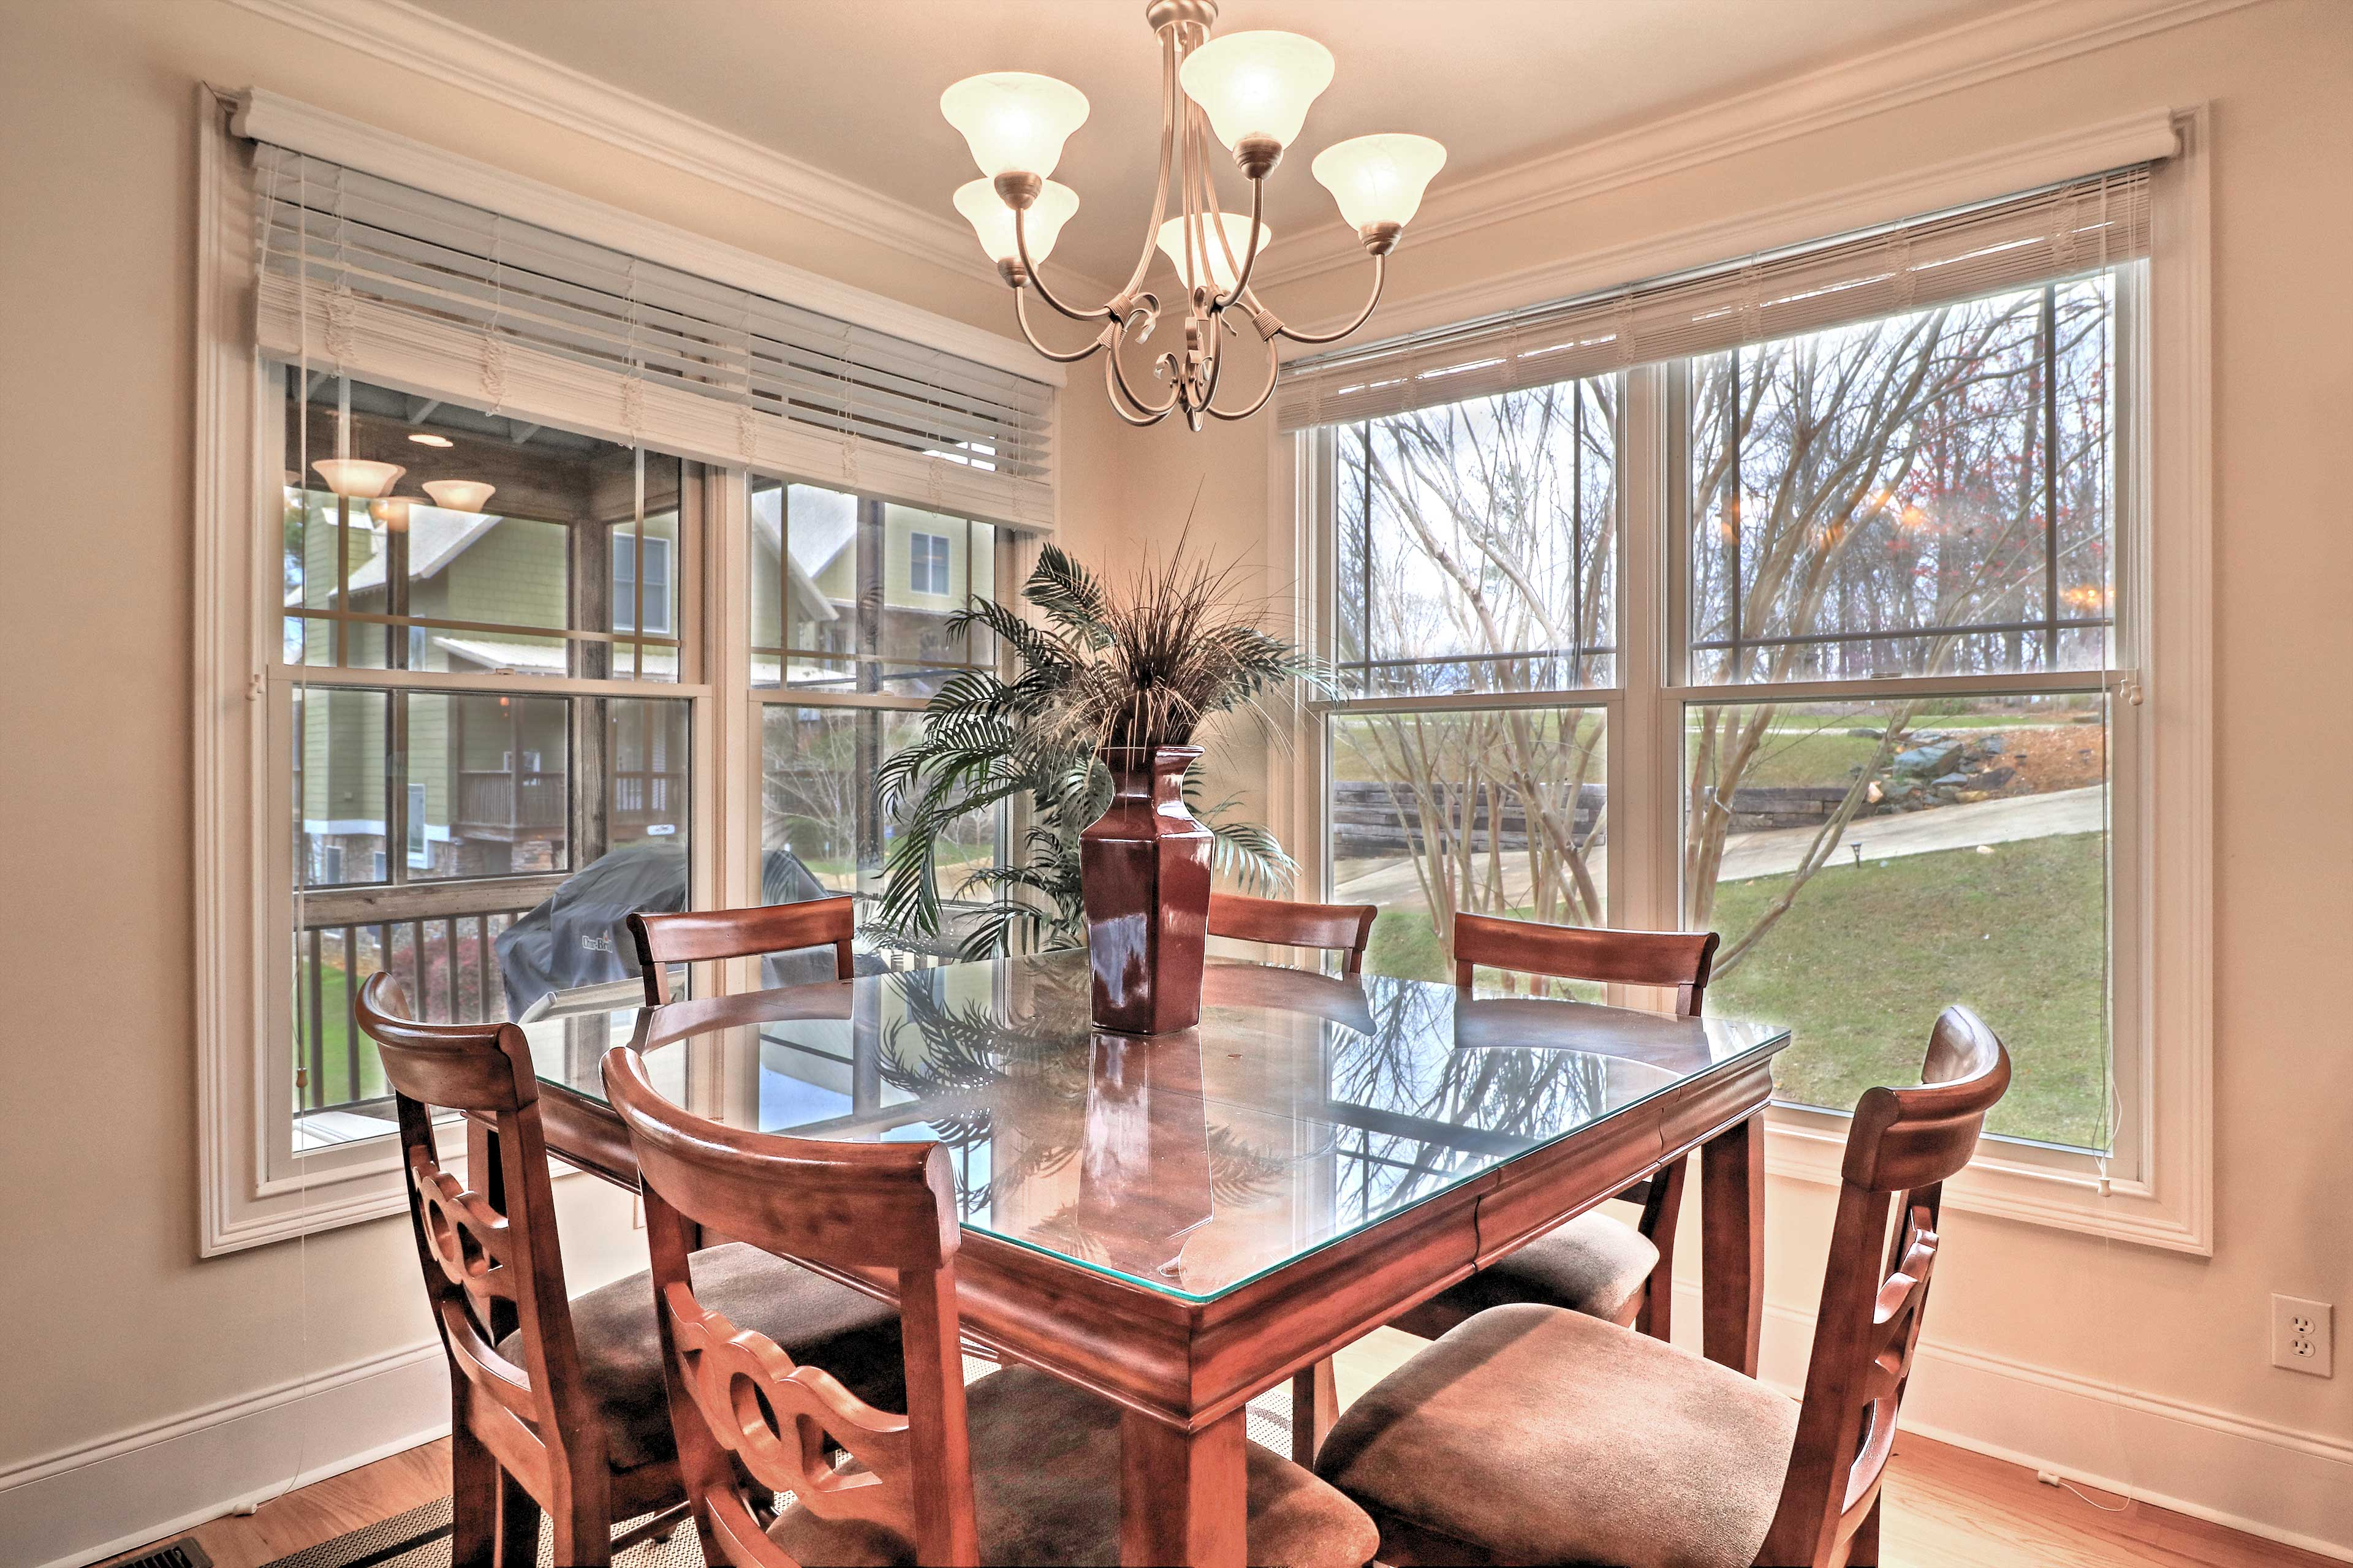 Sit down at the dining table and enjoy mealtime together!